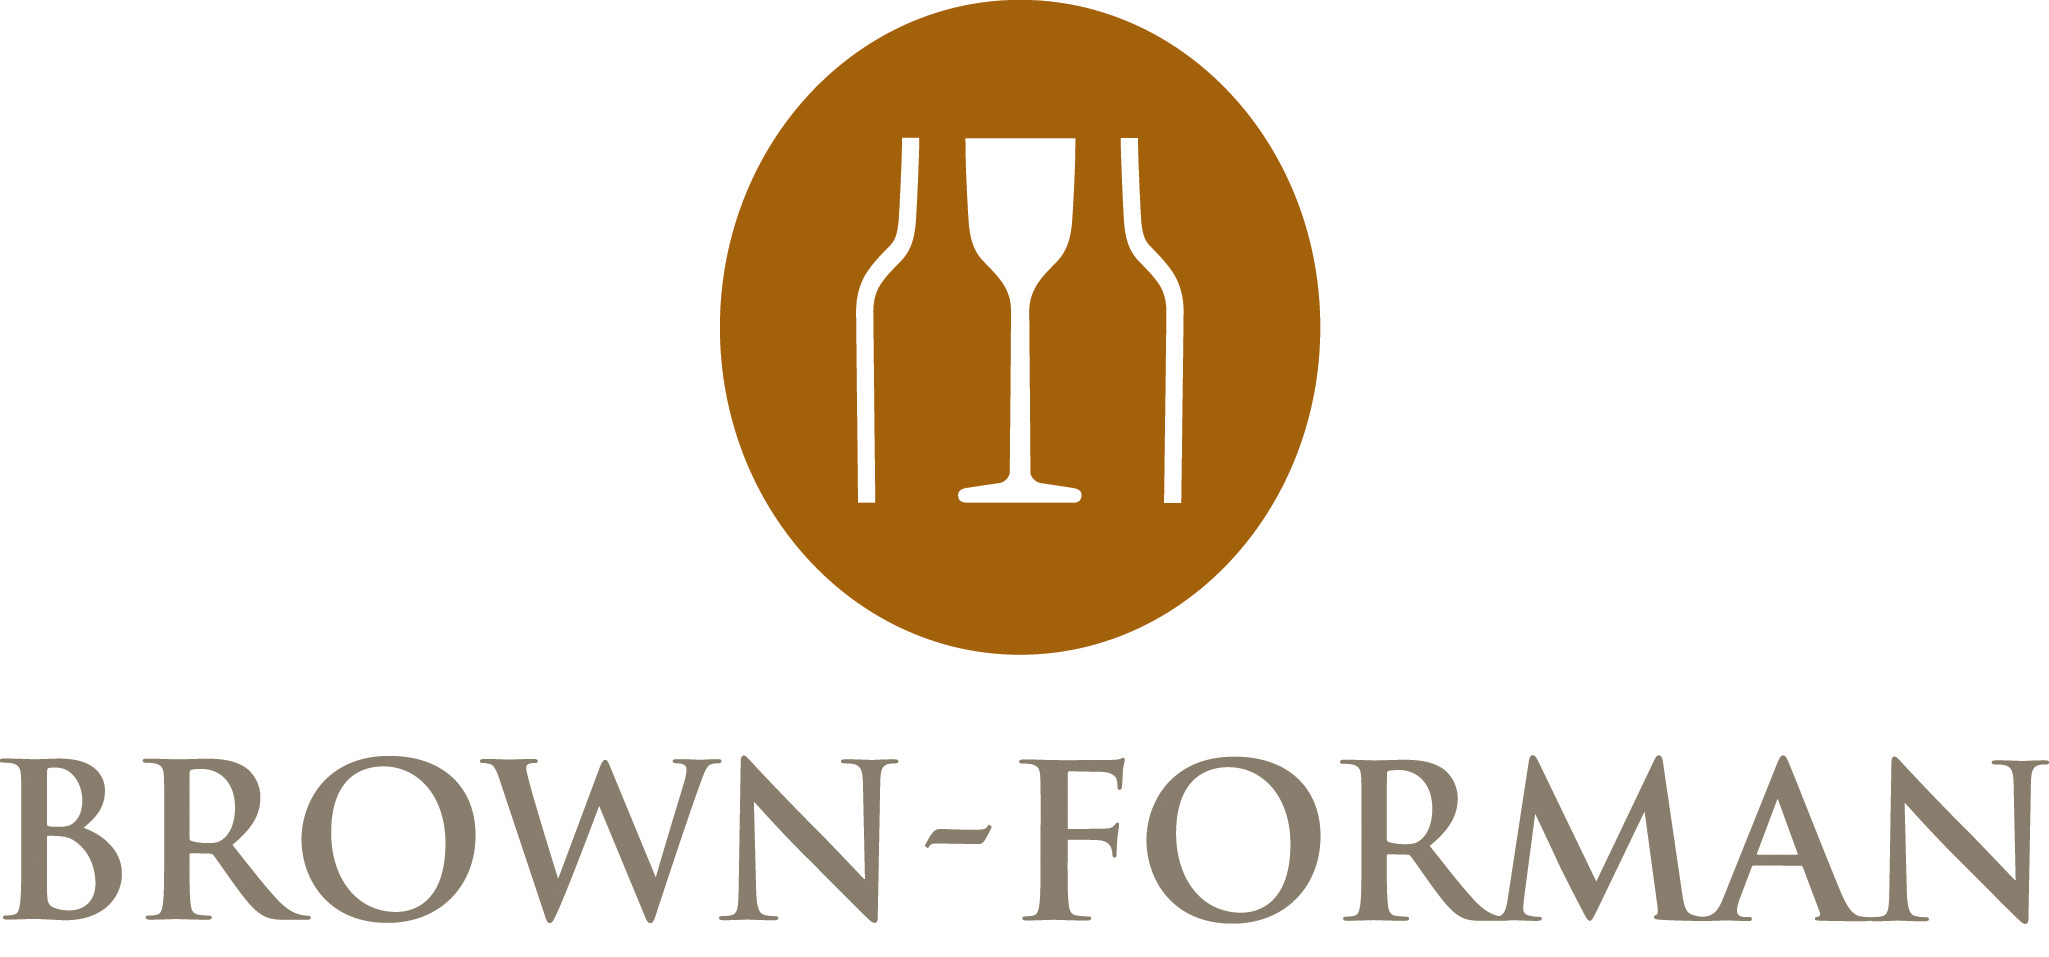 brown-forman-co-bfb-upgraded-by-zacks-investment-research-to-hold.jpg